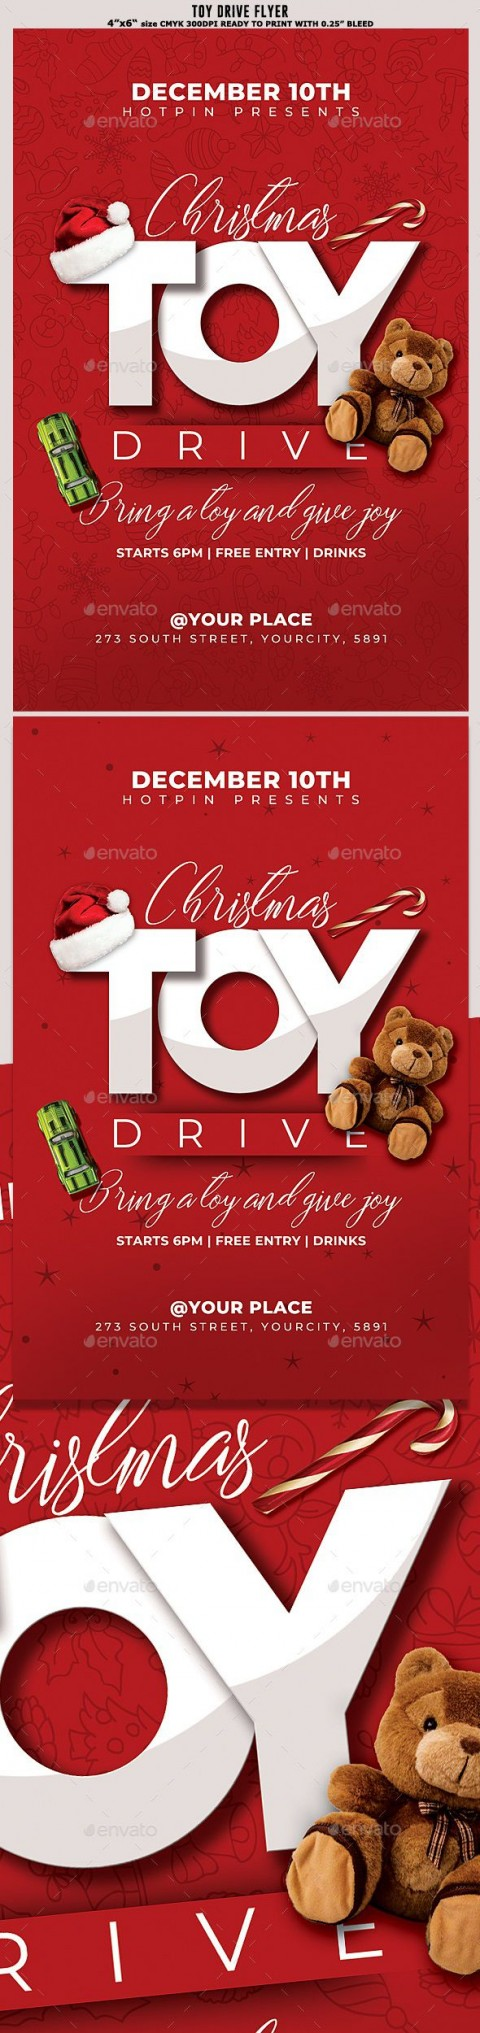 010 Impressive Toy Drive Flyer Template Free Highest Quality  Download Christma480